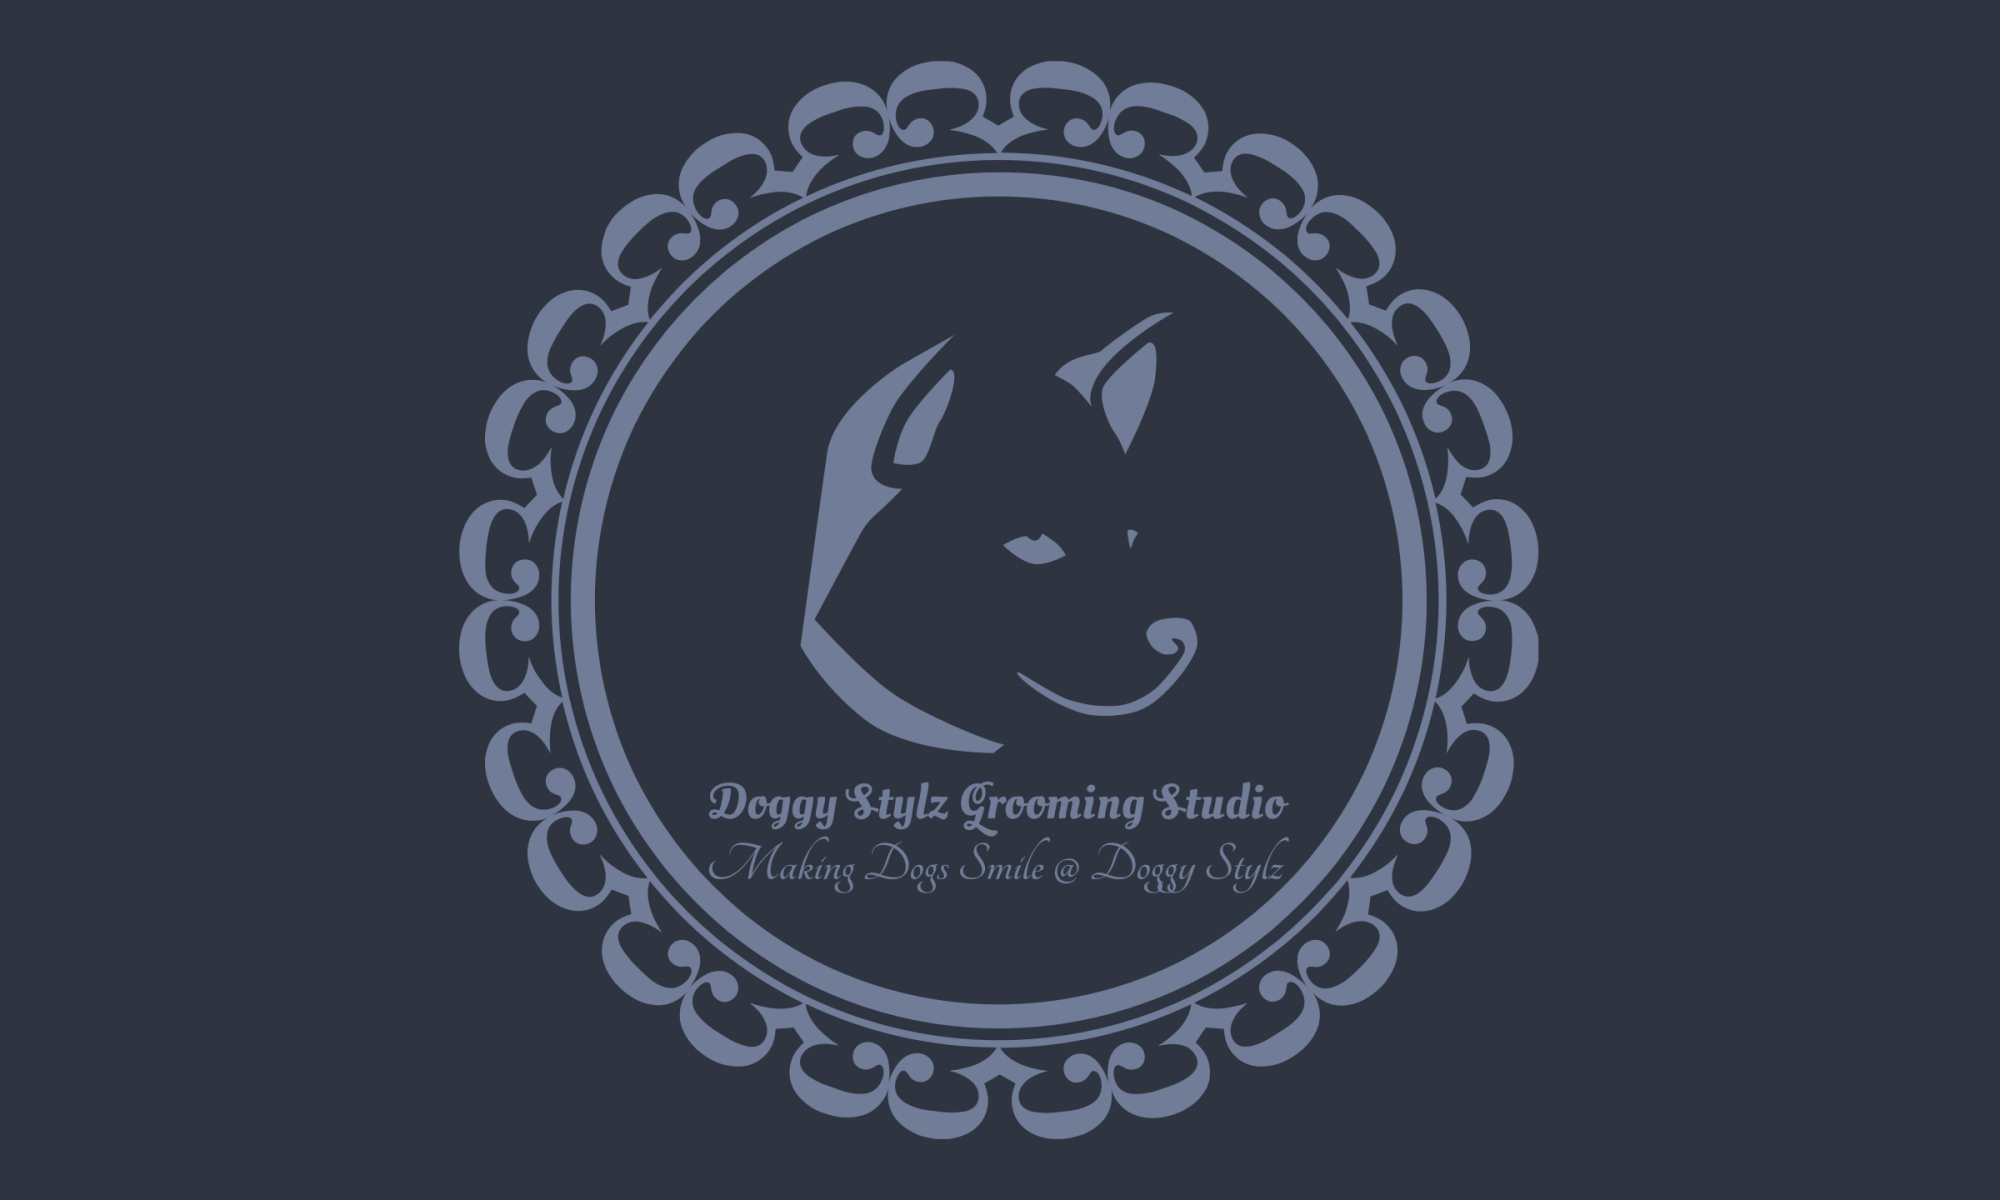 Doggy Stylz Grooming Studio